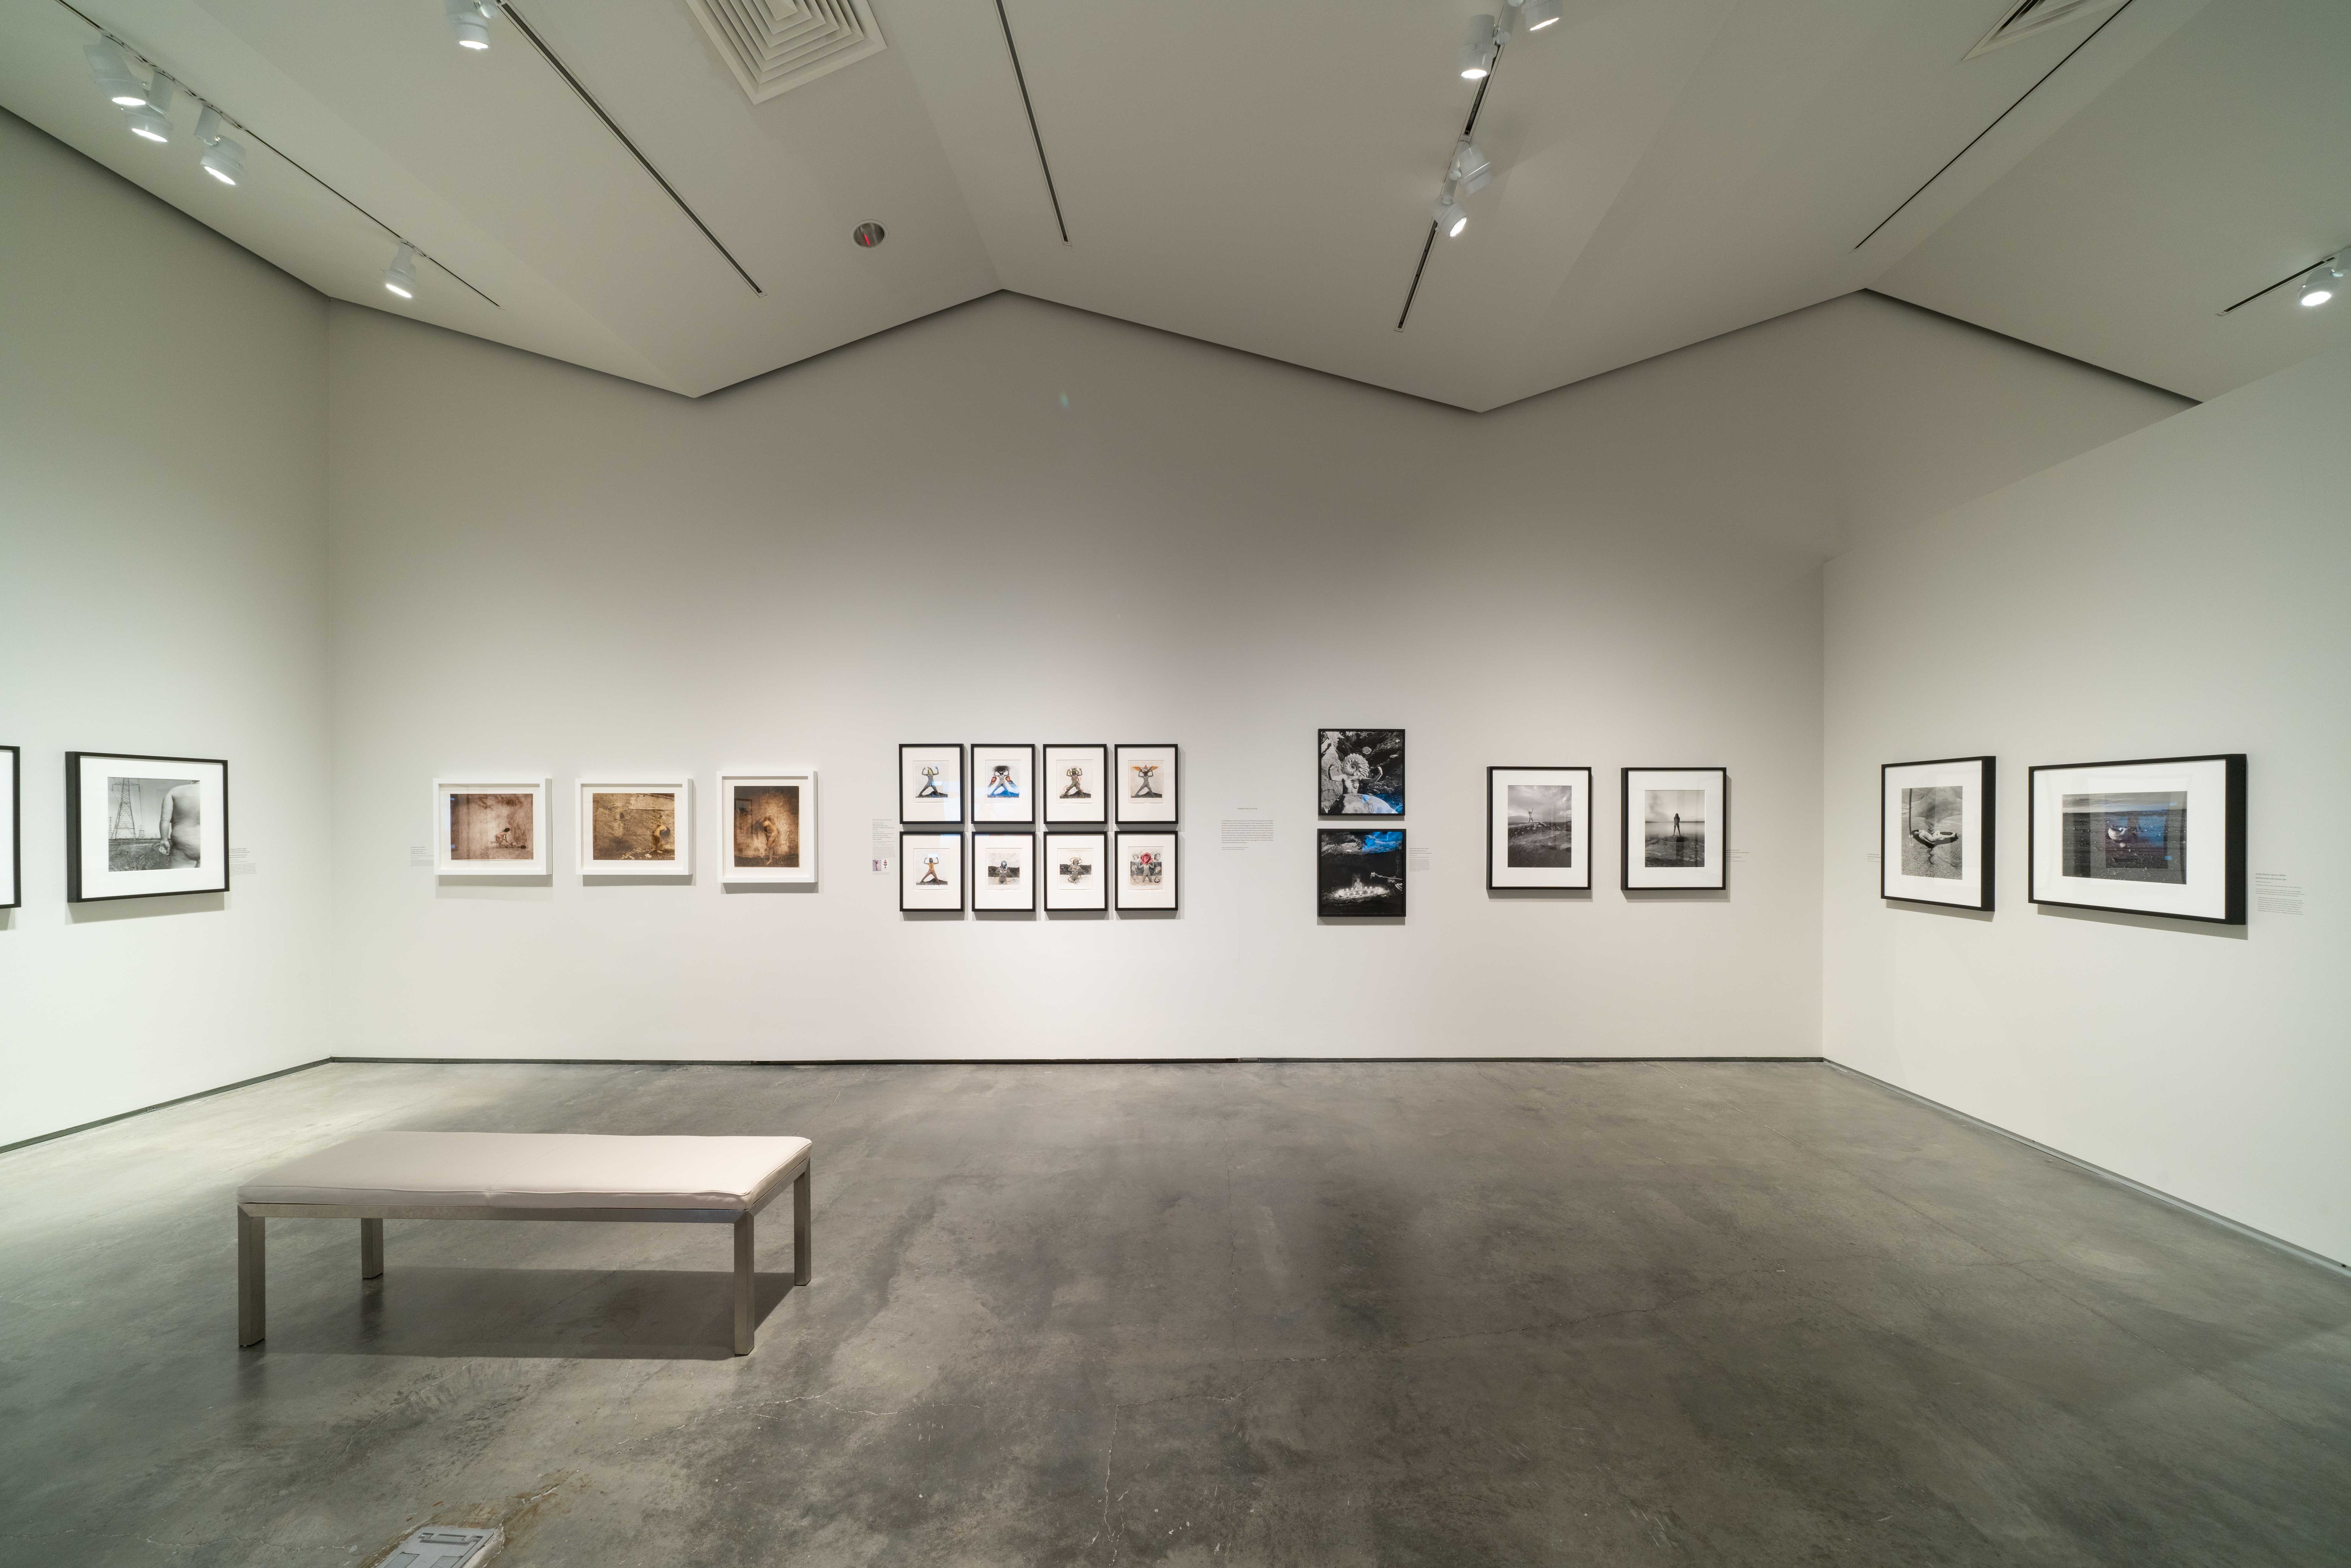 Laid Bare in the Landscapes - The Nevada Museum of Art